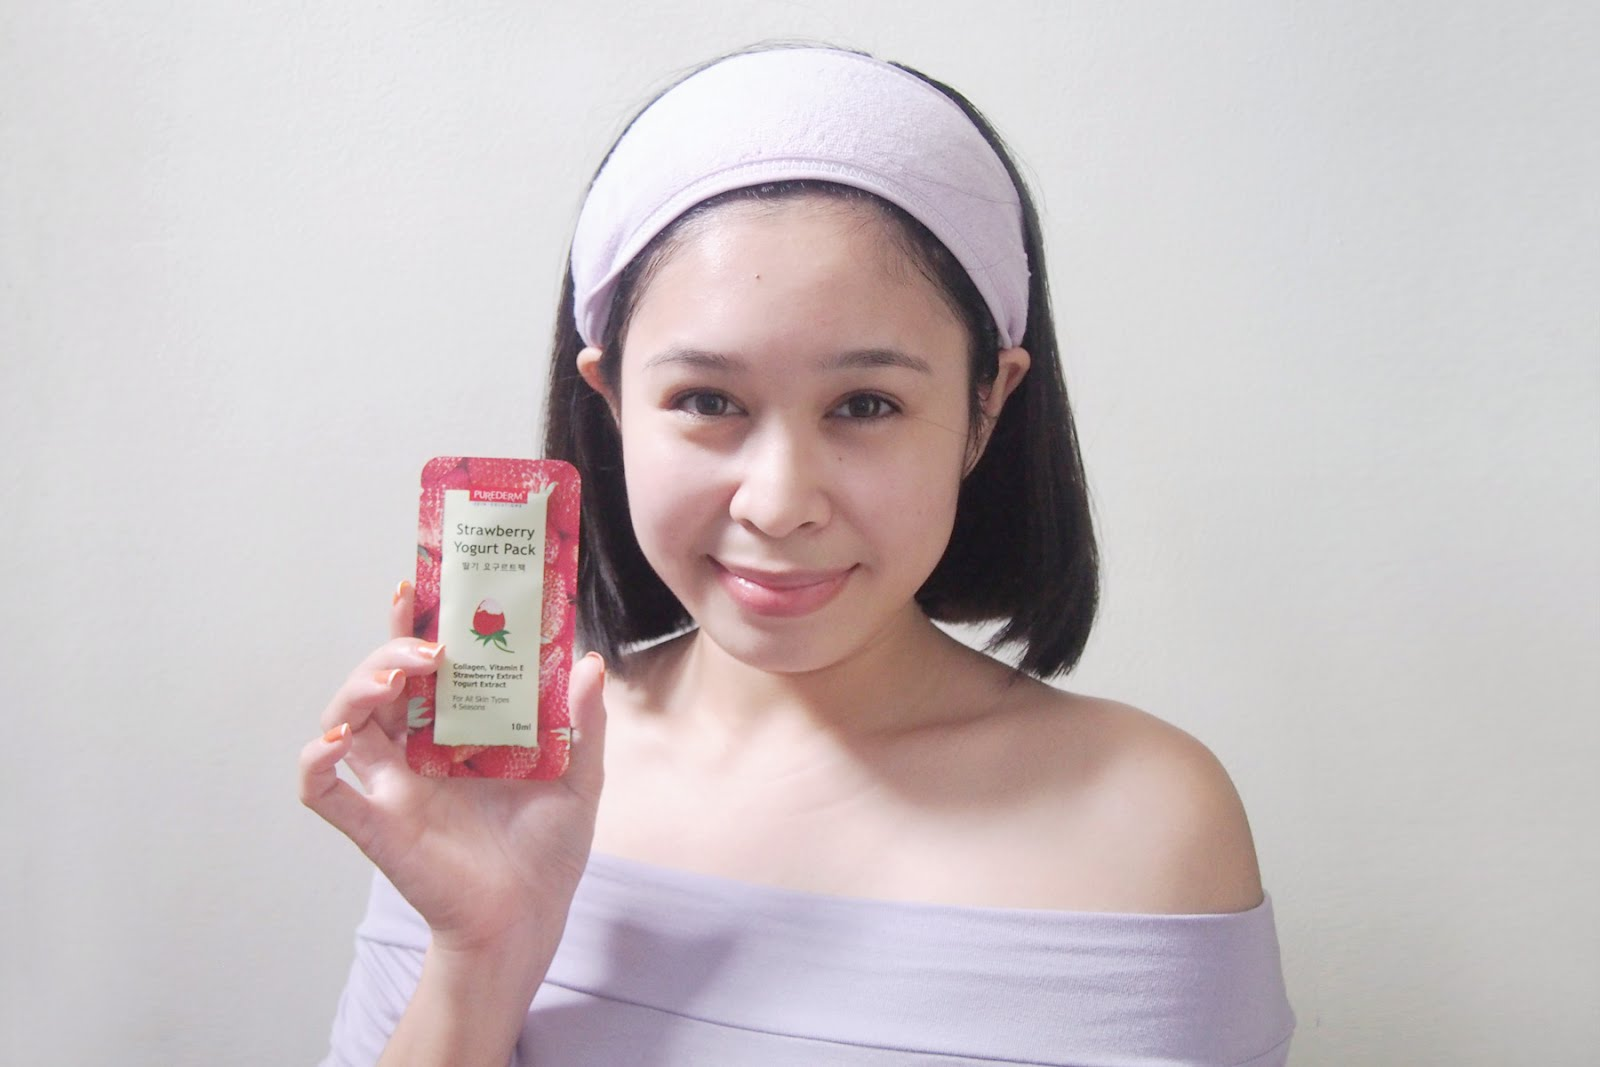 Purederm Strawberry Mask Yogurt Pack Theres More To Mica Eye Ive Just Readied Cleansed My Face For This Awesome Product People Have Given Good Reviews